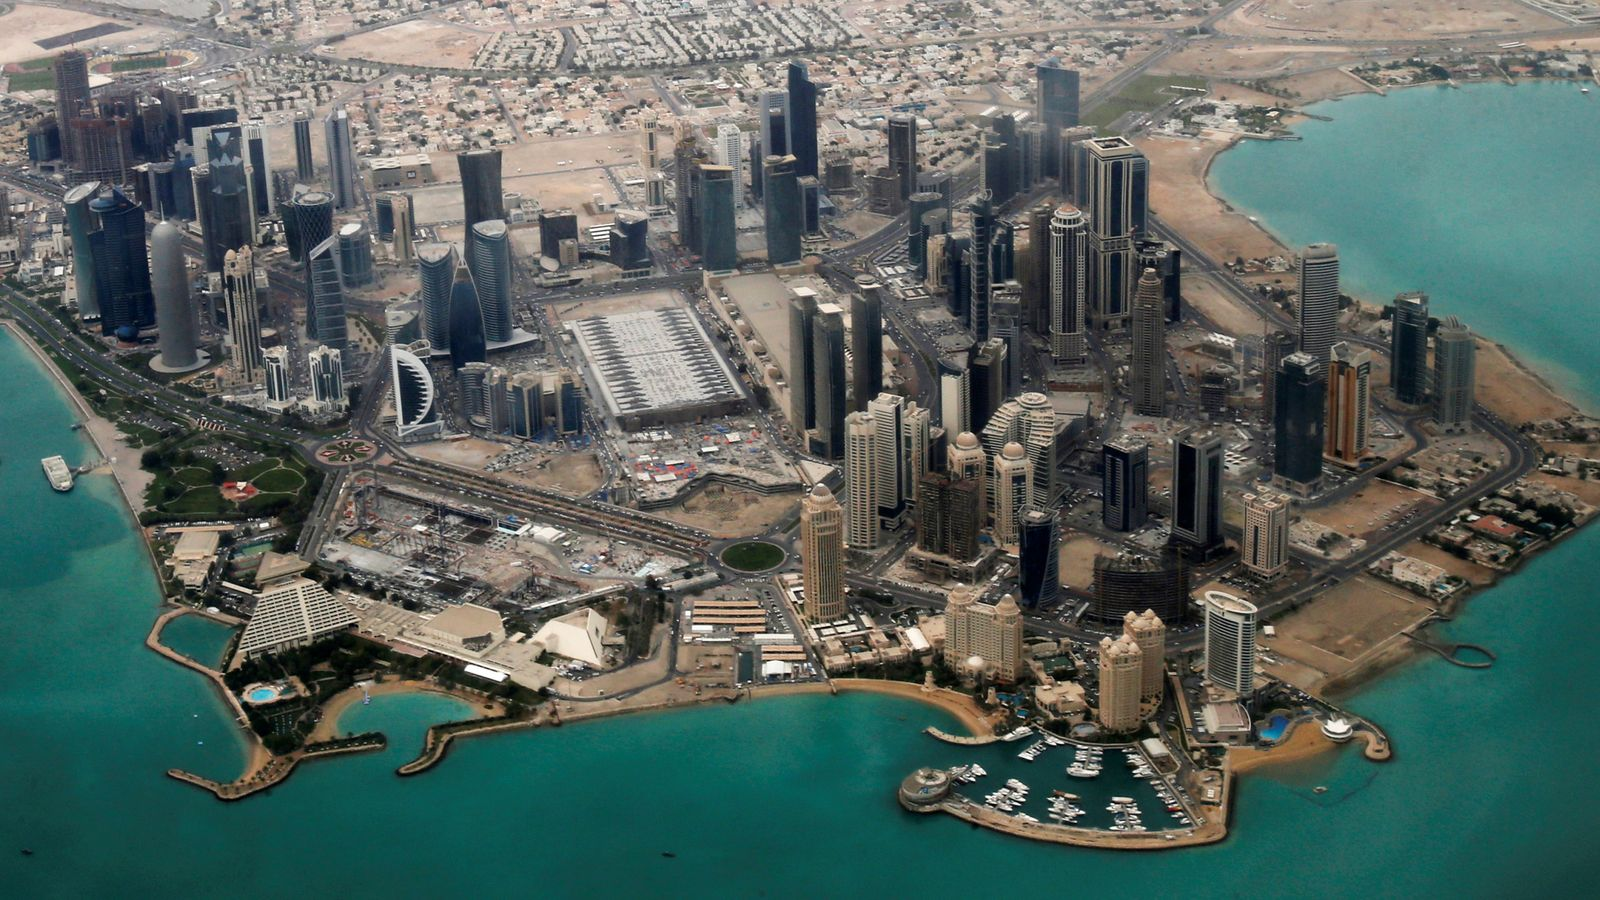 Doha has been accused of destabilising the region by backing extremist groups